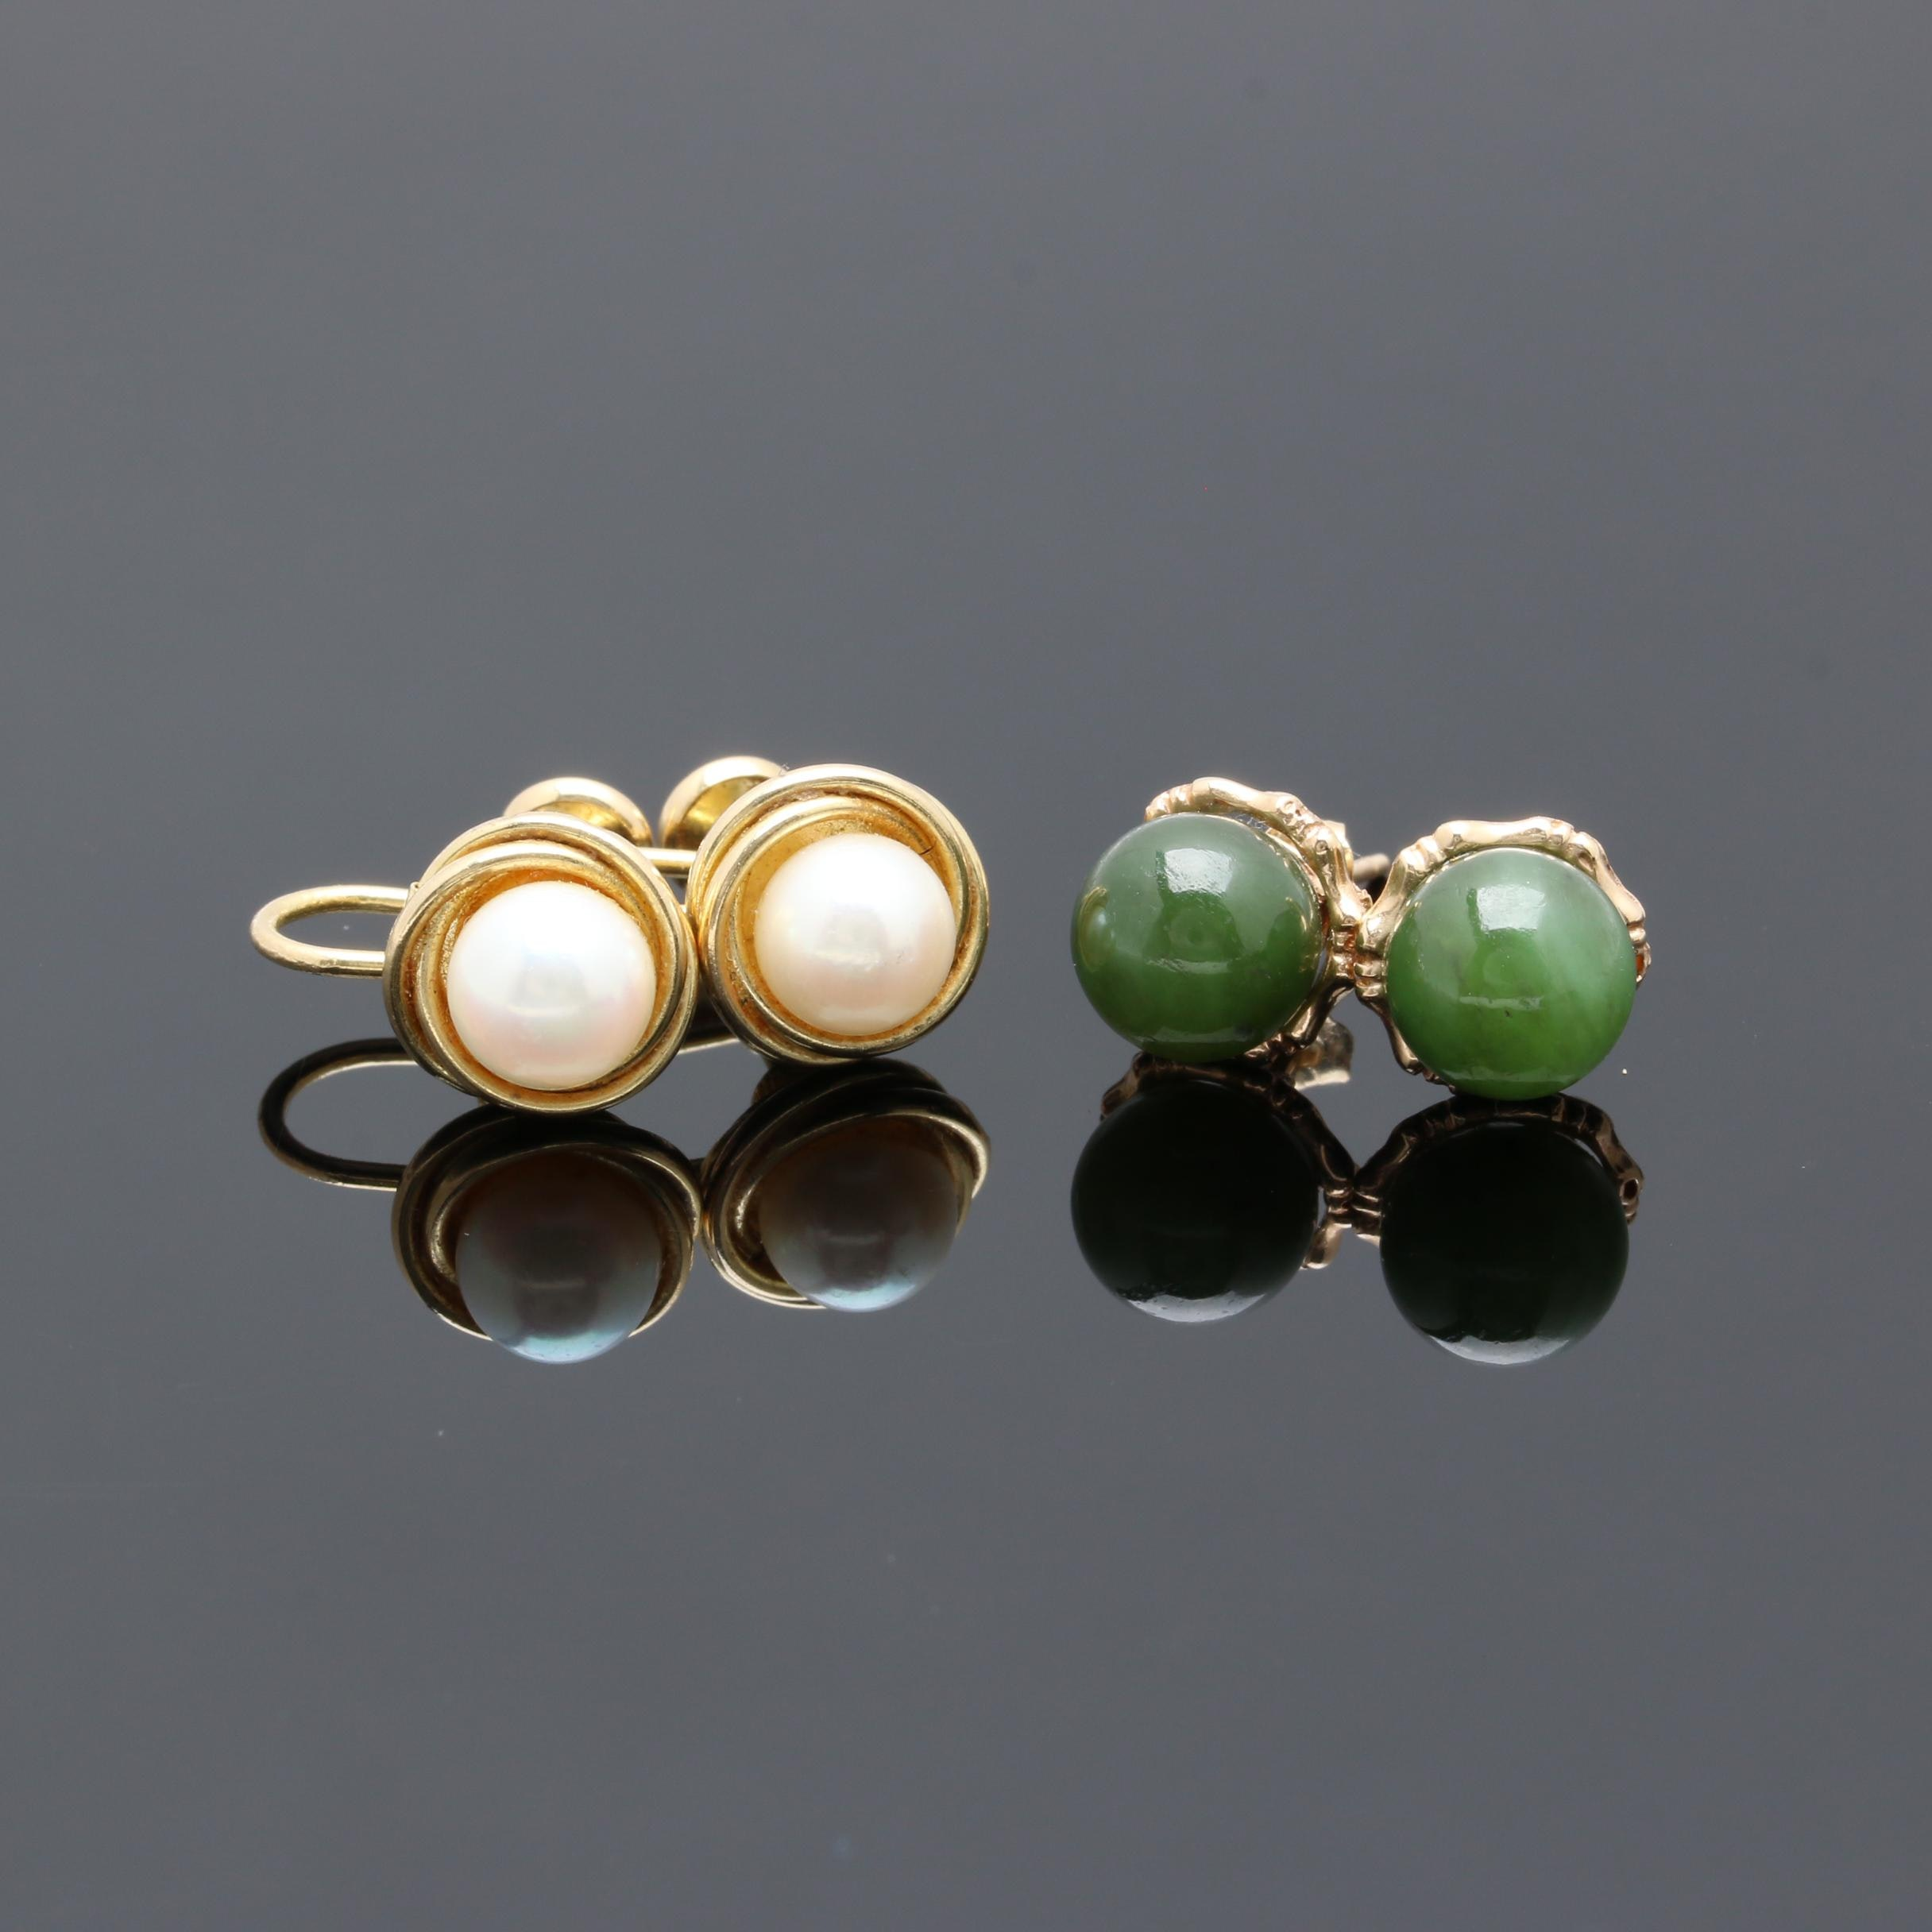 14K Yellow Gold Earring Selection Including Cultured Pearl and Nephrite